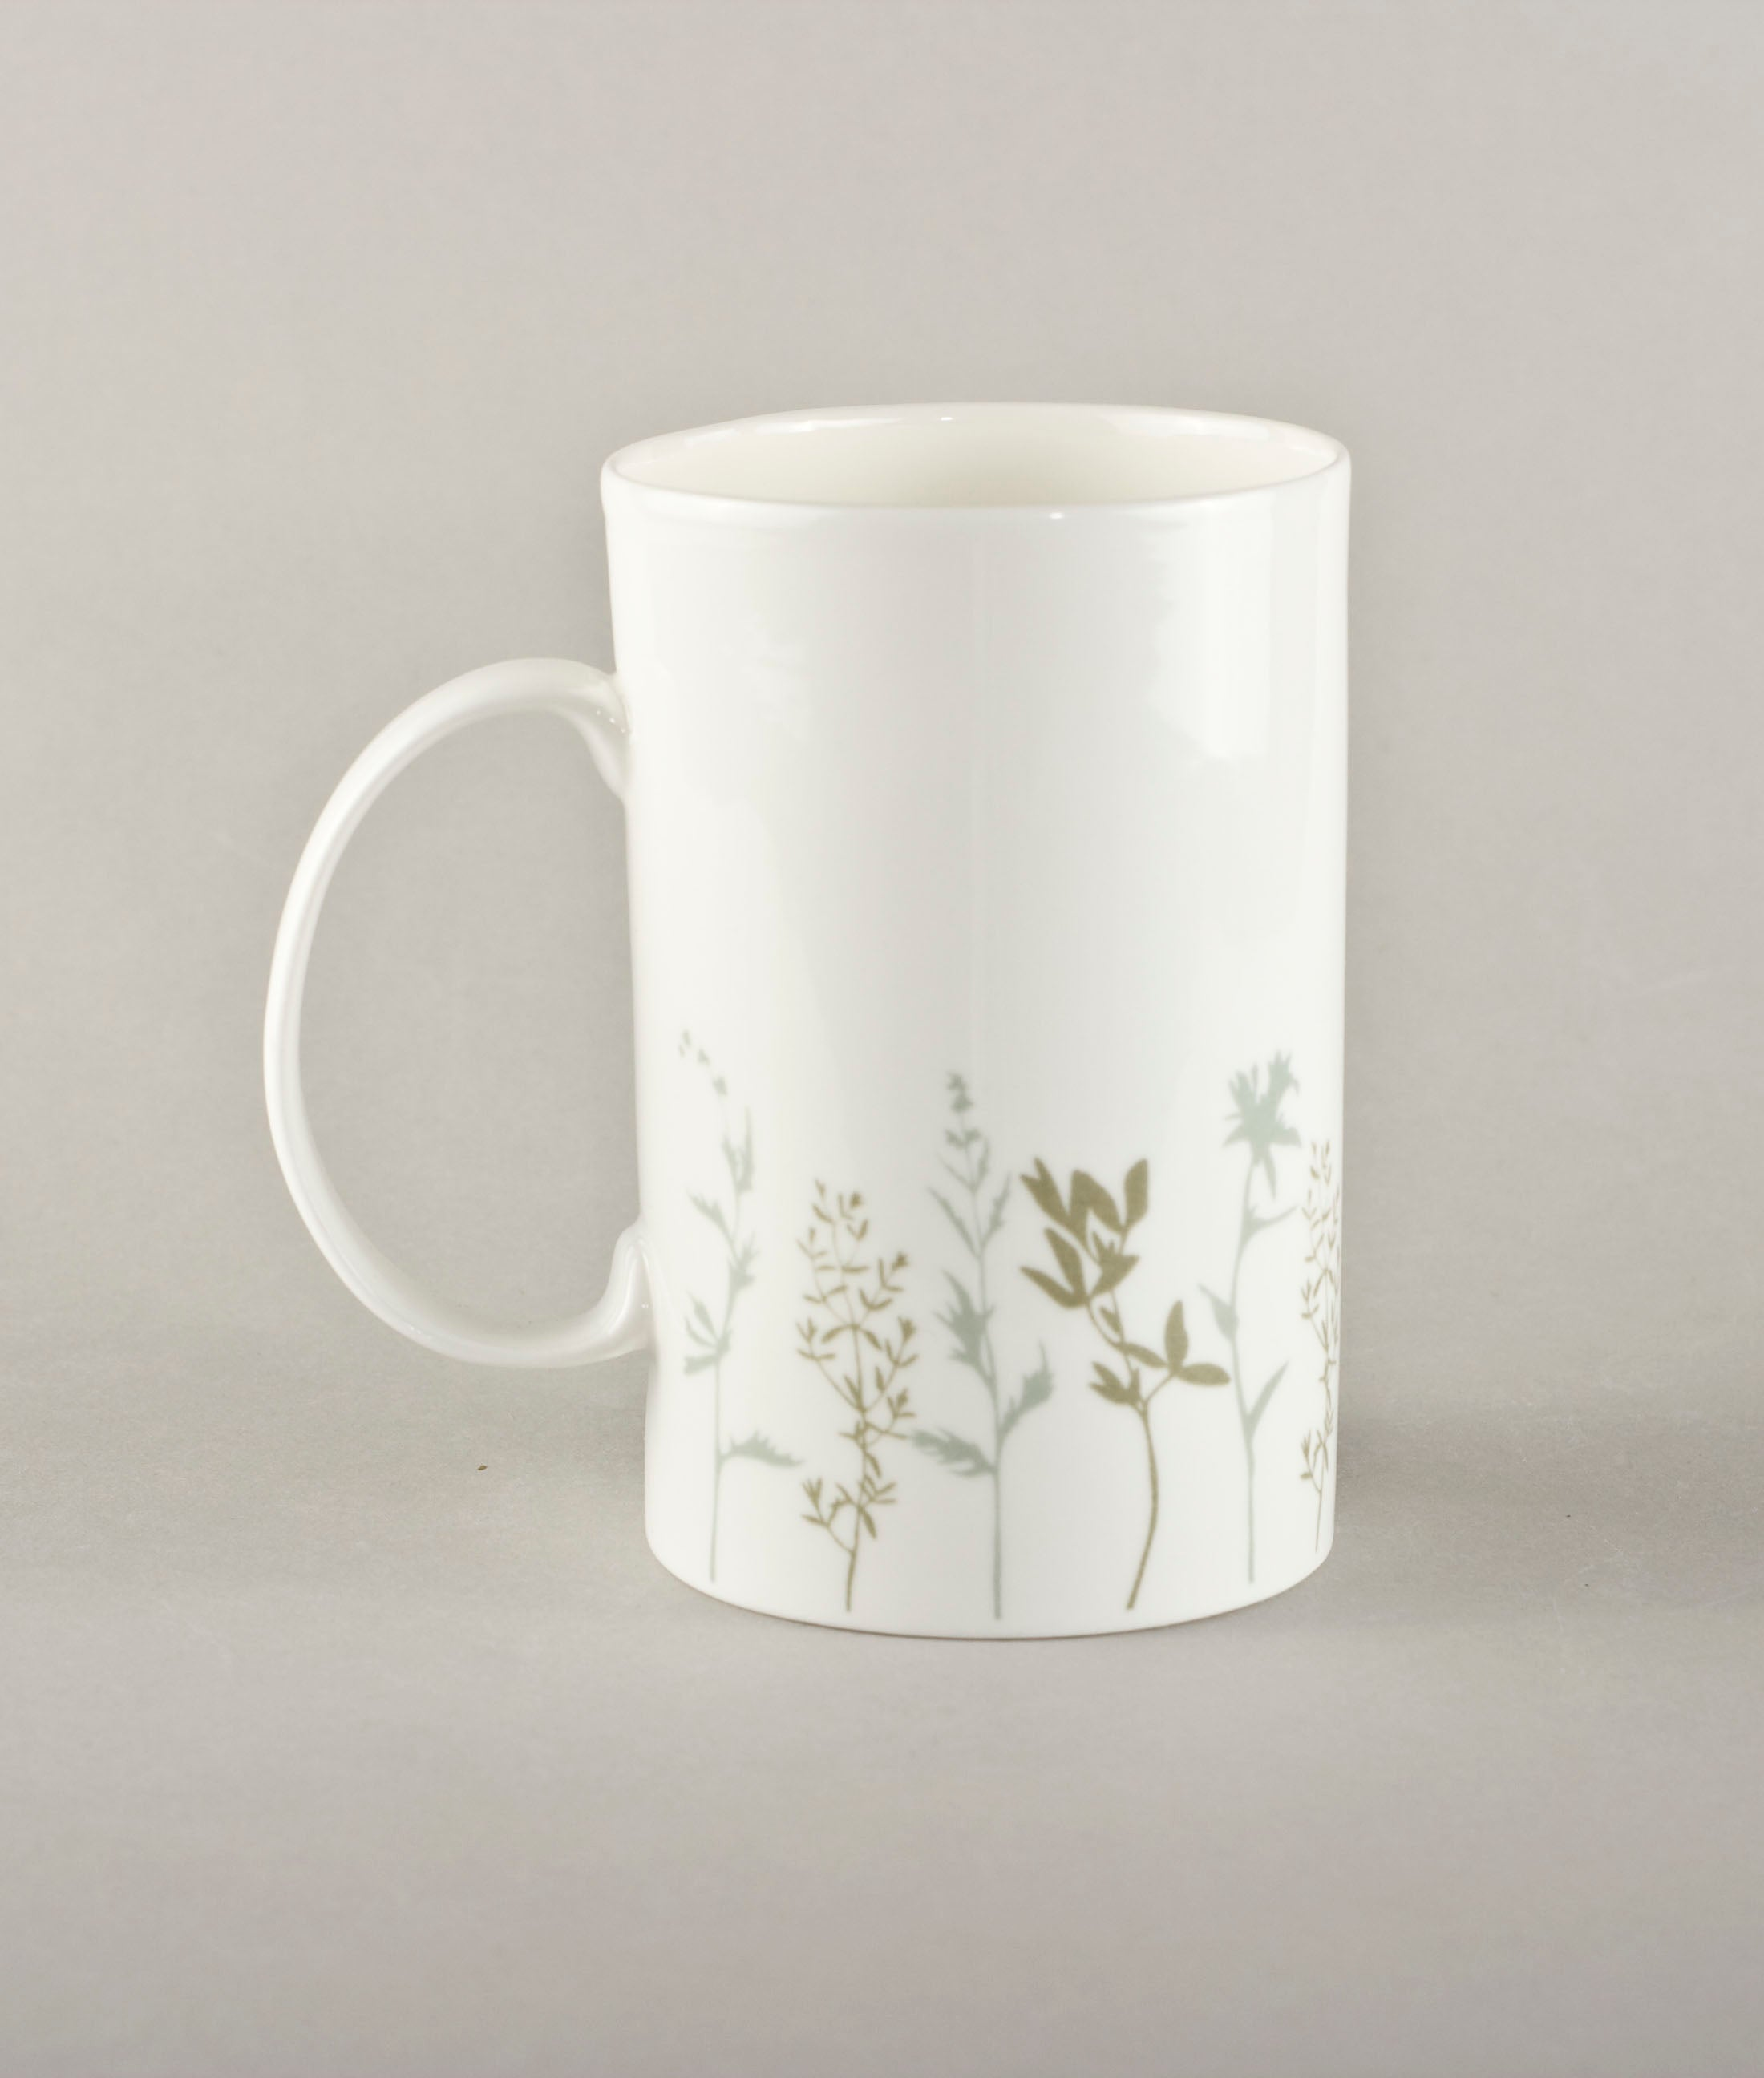 Meadow 1. Medium Mug